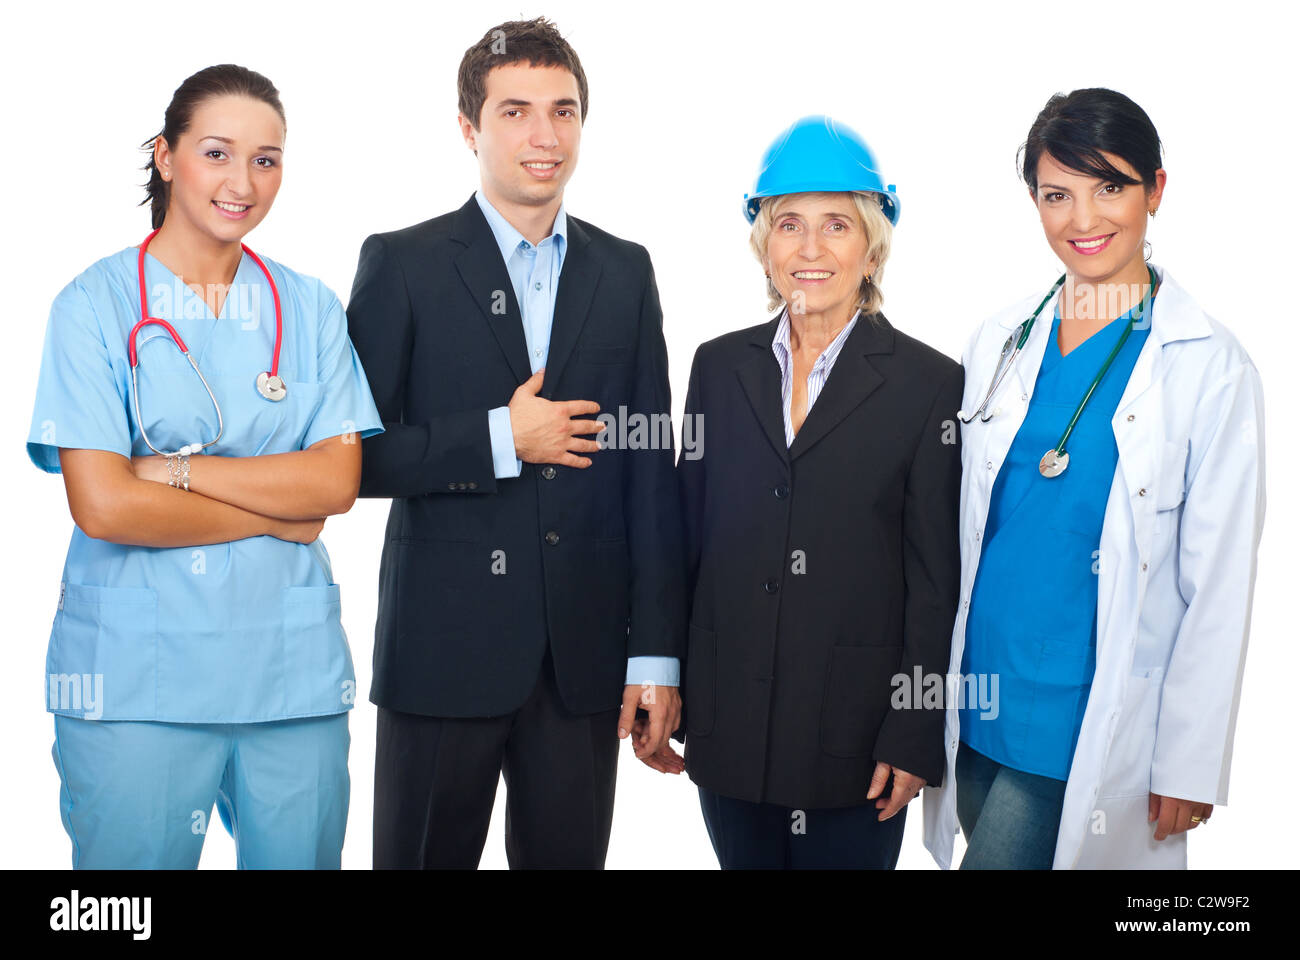 Four workers with different careers standing in a row and smiling isolated on white background - Stock Image